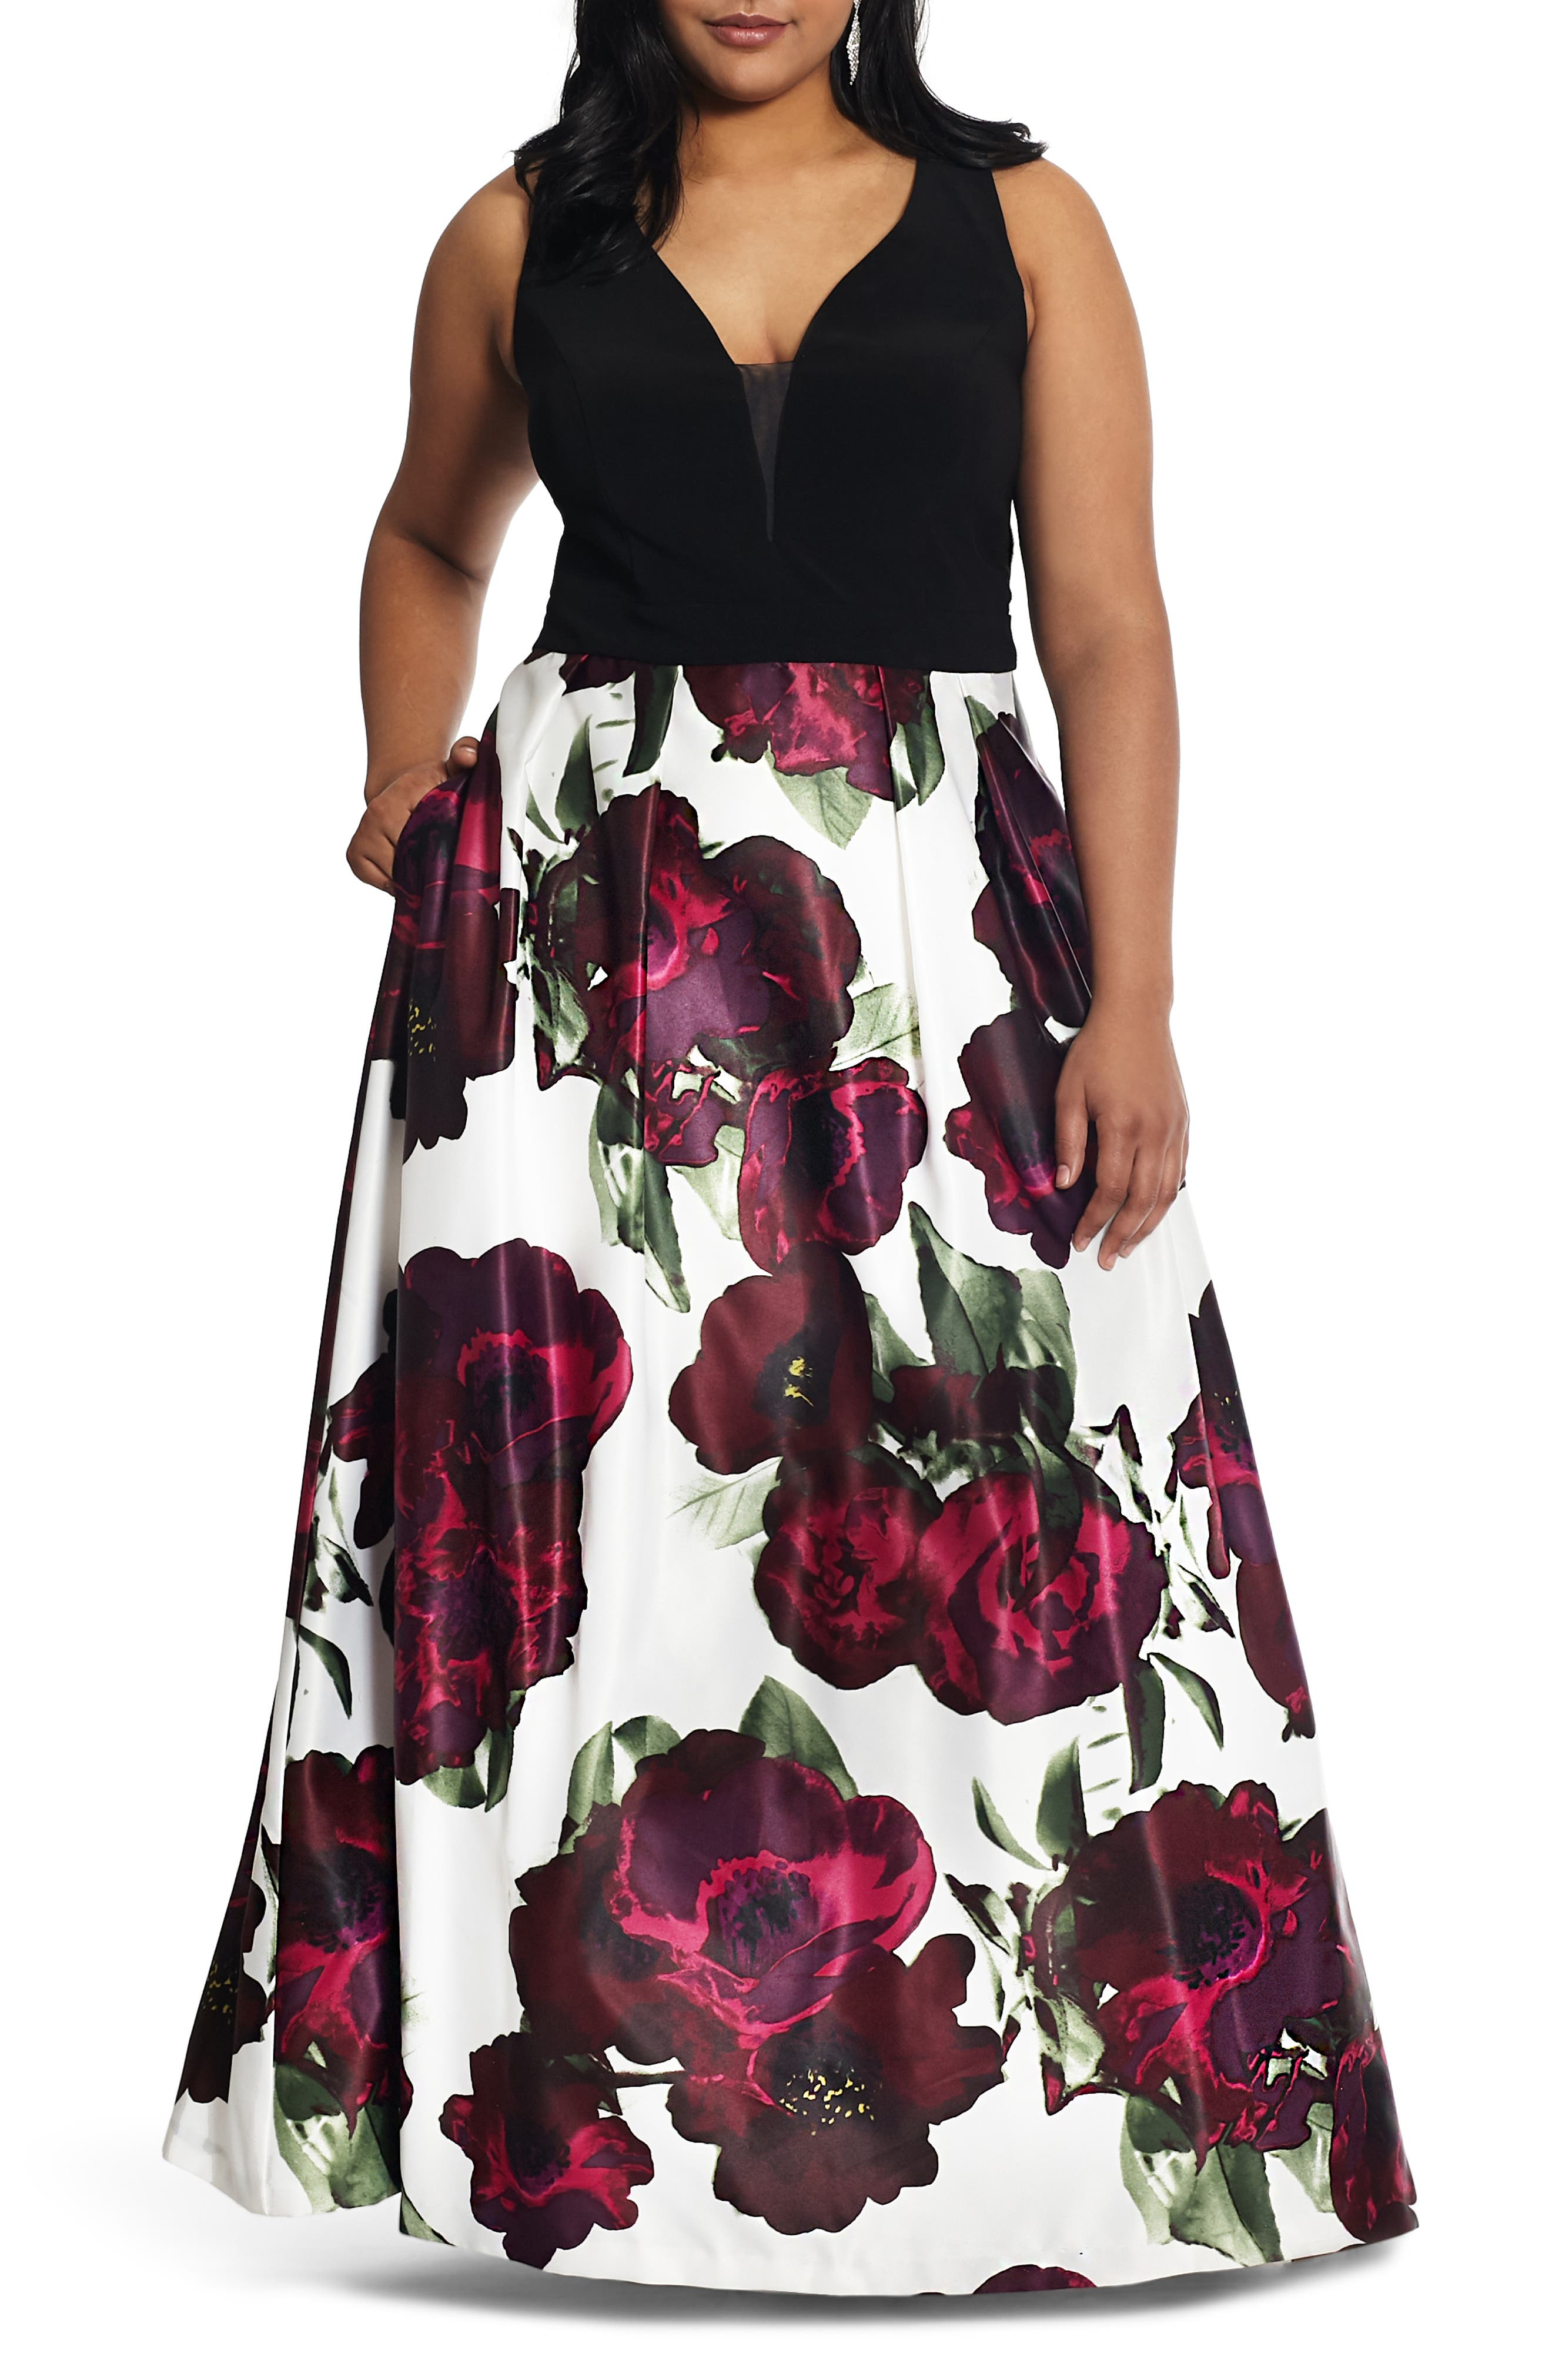 1950s Formal Dresses & Evening Gowns to Buy Plus Size Womens Xscape Floral Evening Gown $154.80 AT vintagedancer.com